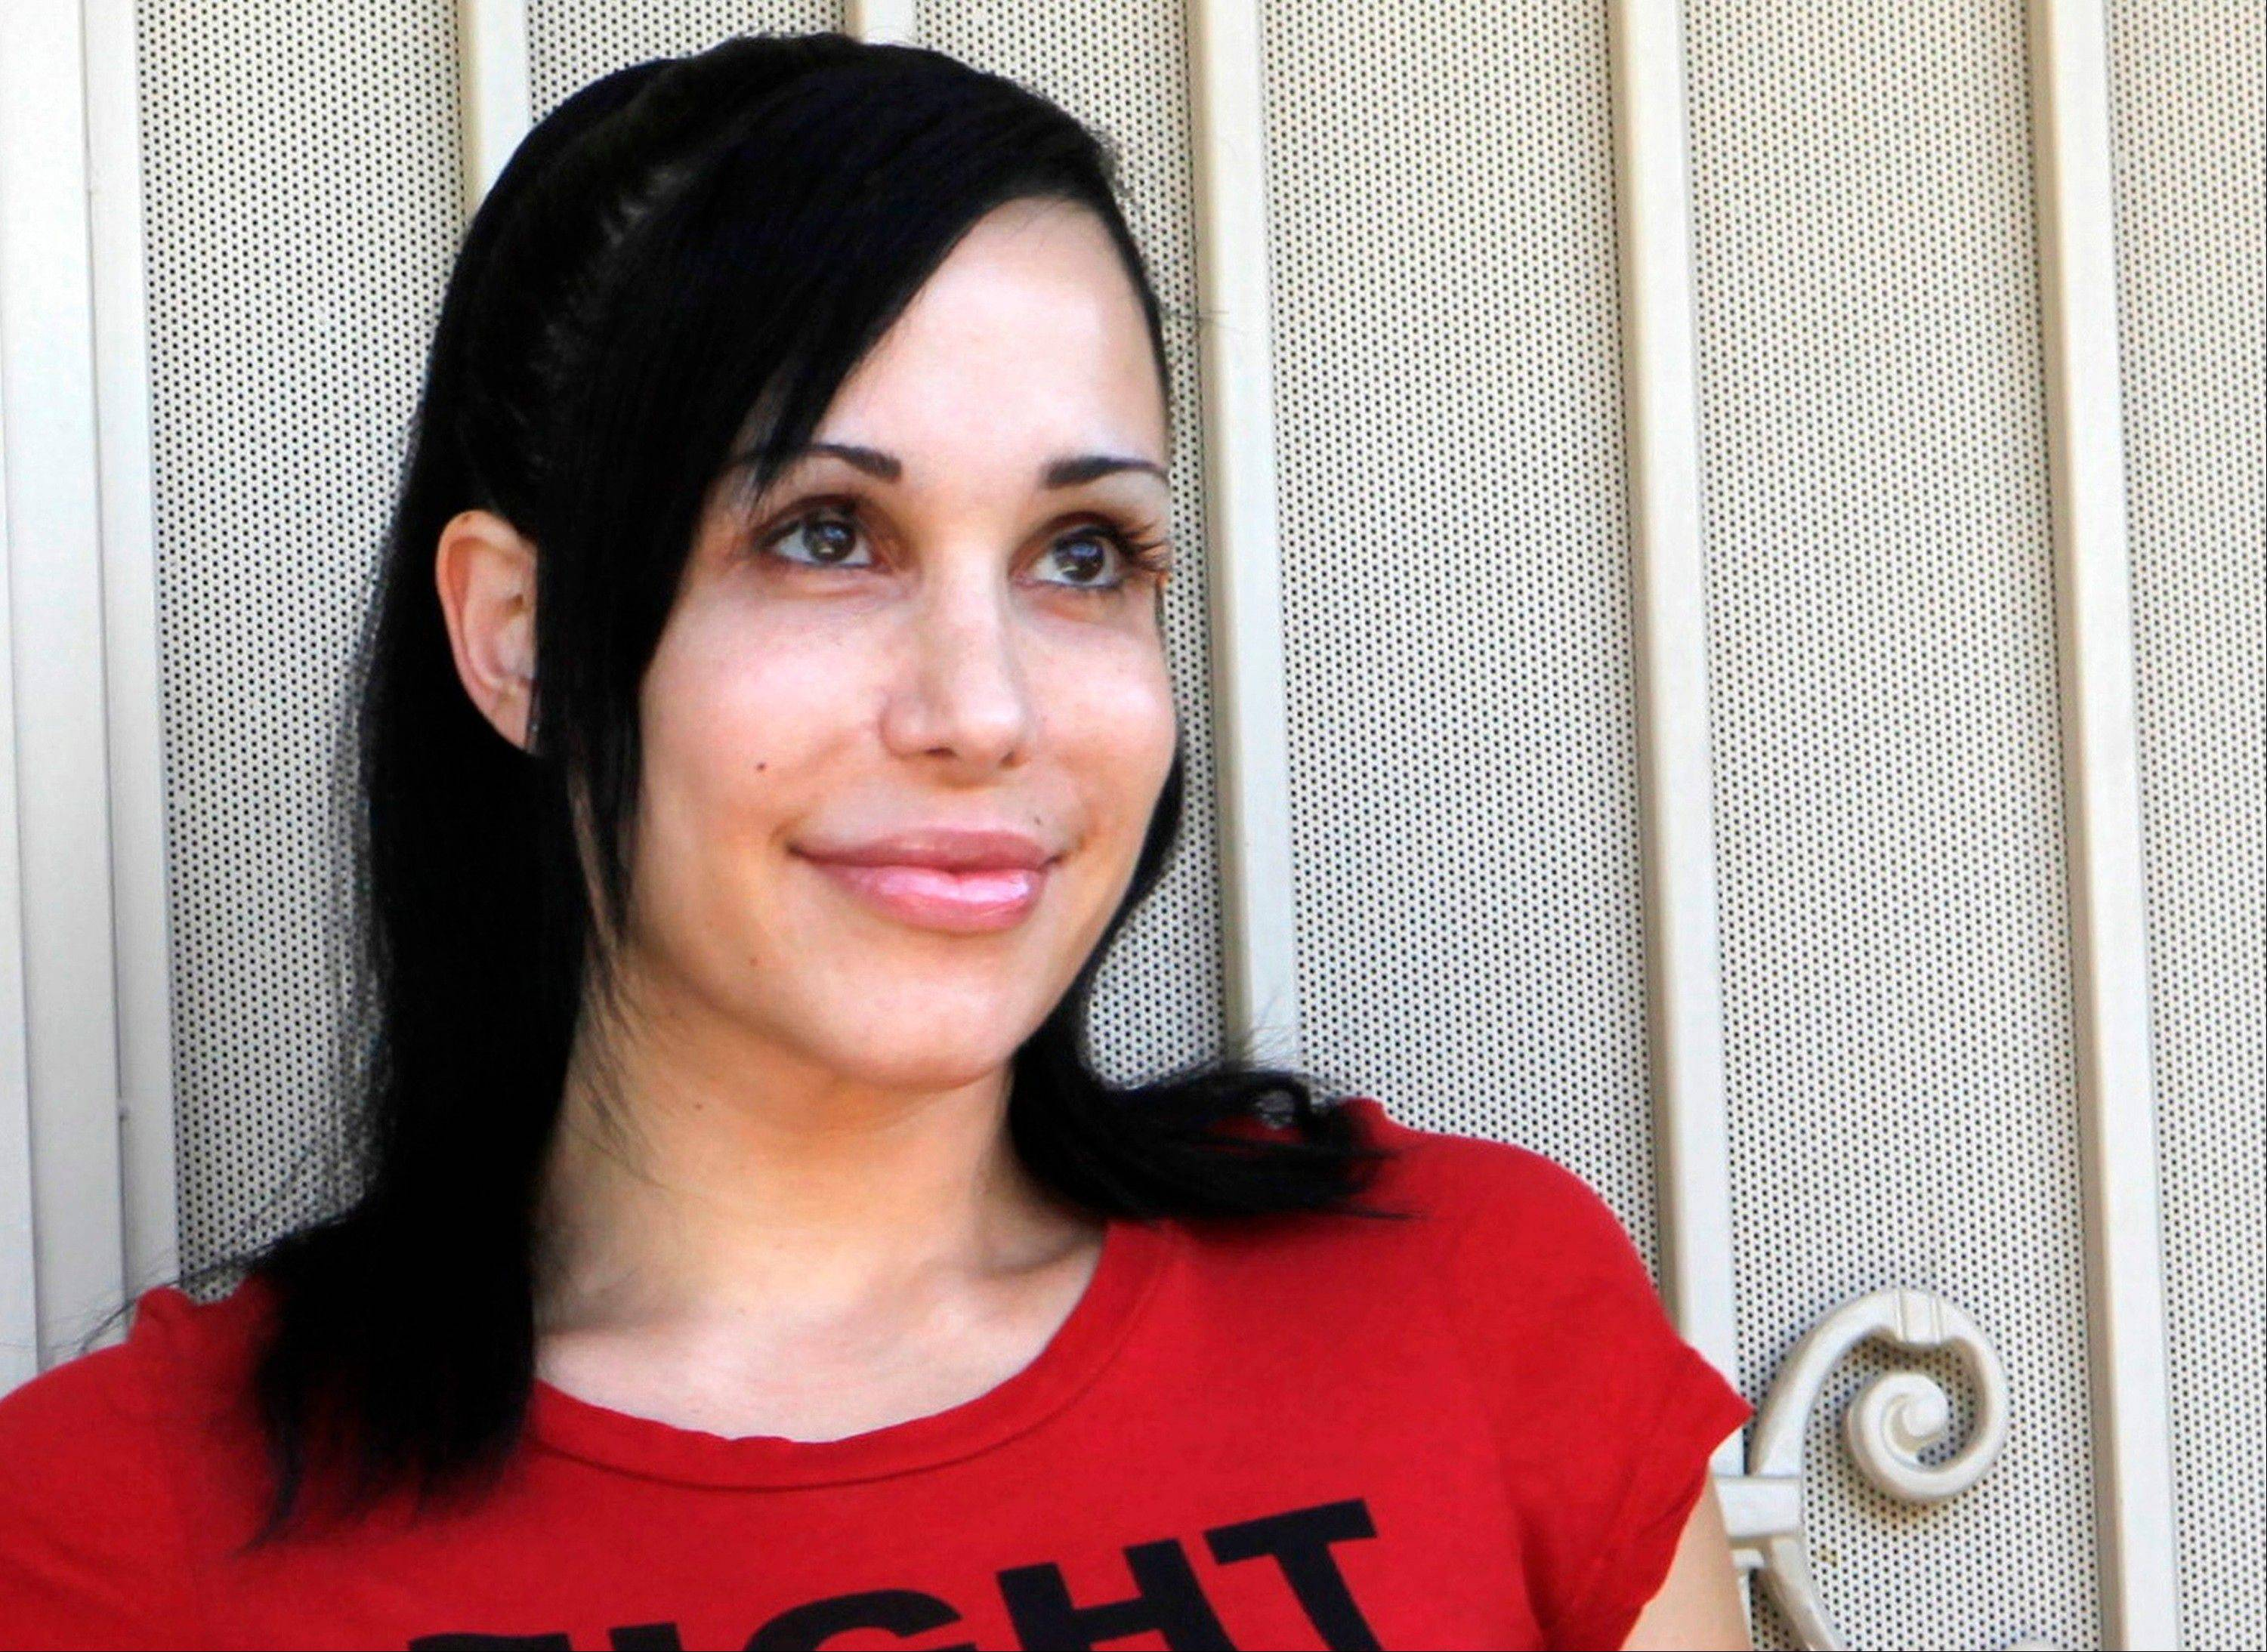 Los Angeles County prosecutors have charged Nadya Suleman with welfare fraud. The district attorney�s office said on Monday that Suleman failed to report nearly $30,000 in earnings while applying for public assistance last year. Suleman gained fame when she gave birth to octuplets in 2009.